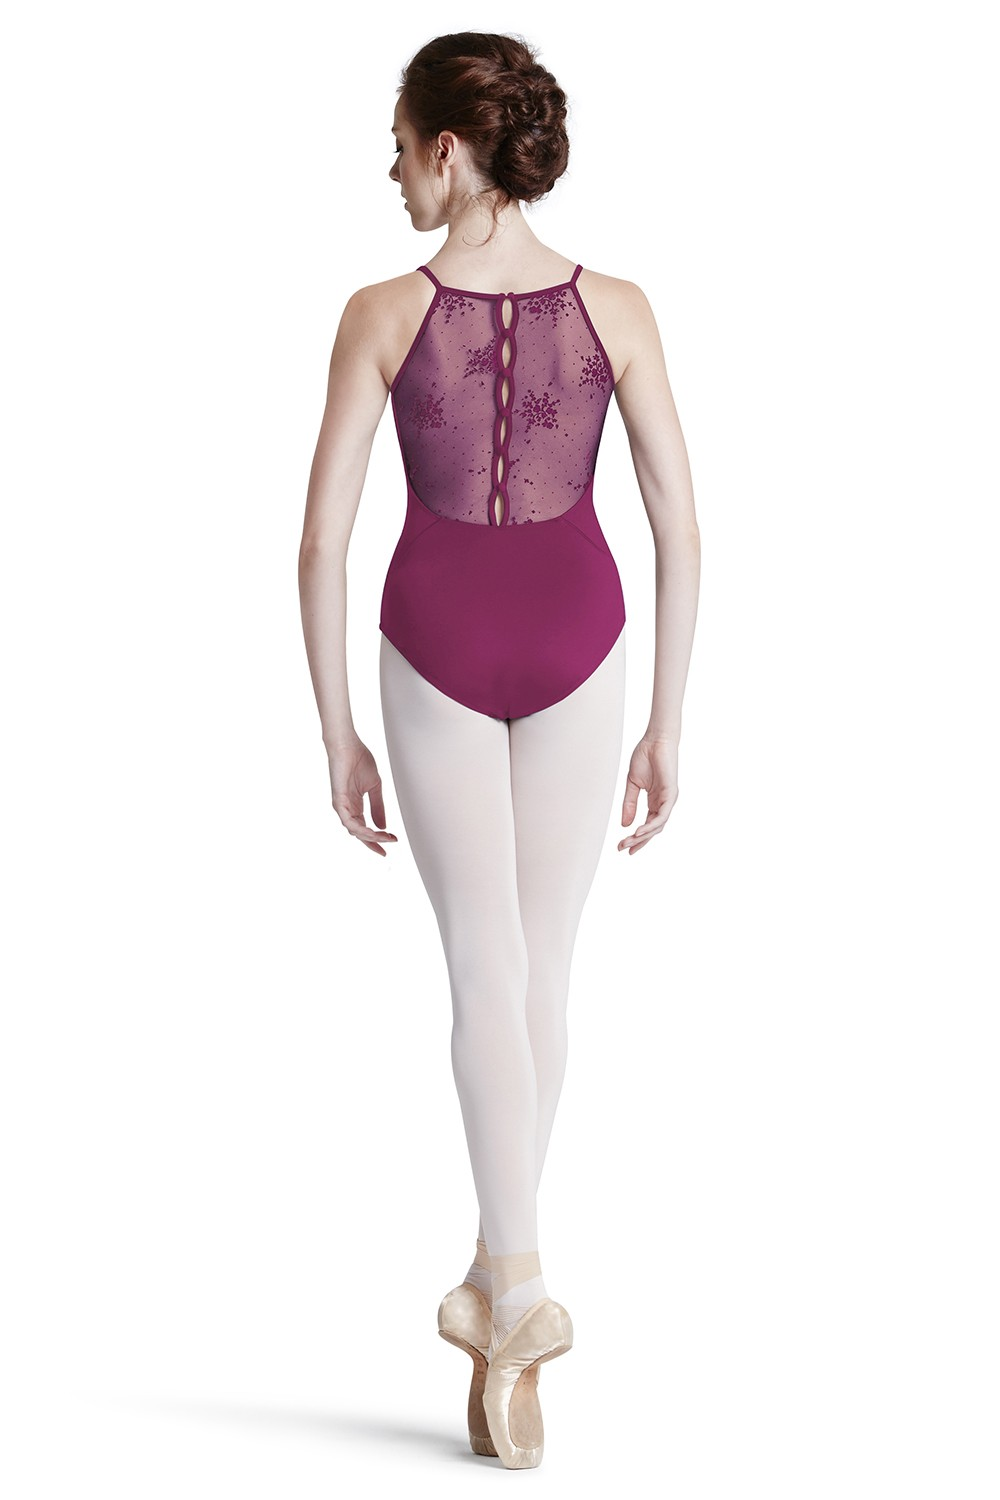 Body A Spalline Sottili Con Retro In Tessuto A Rete E Motivi Floreali Floccati Women's Dance Leotards